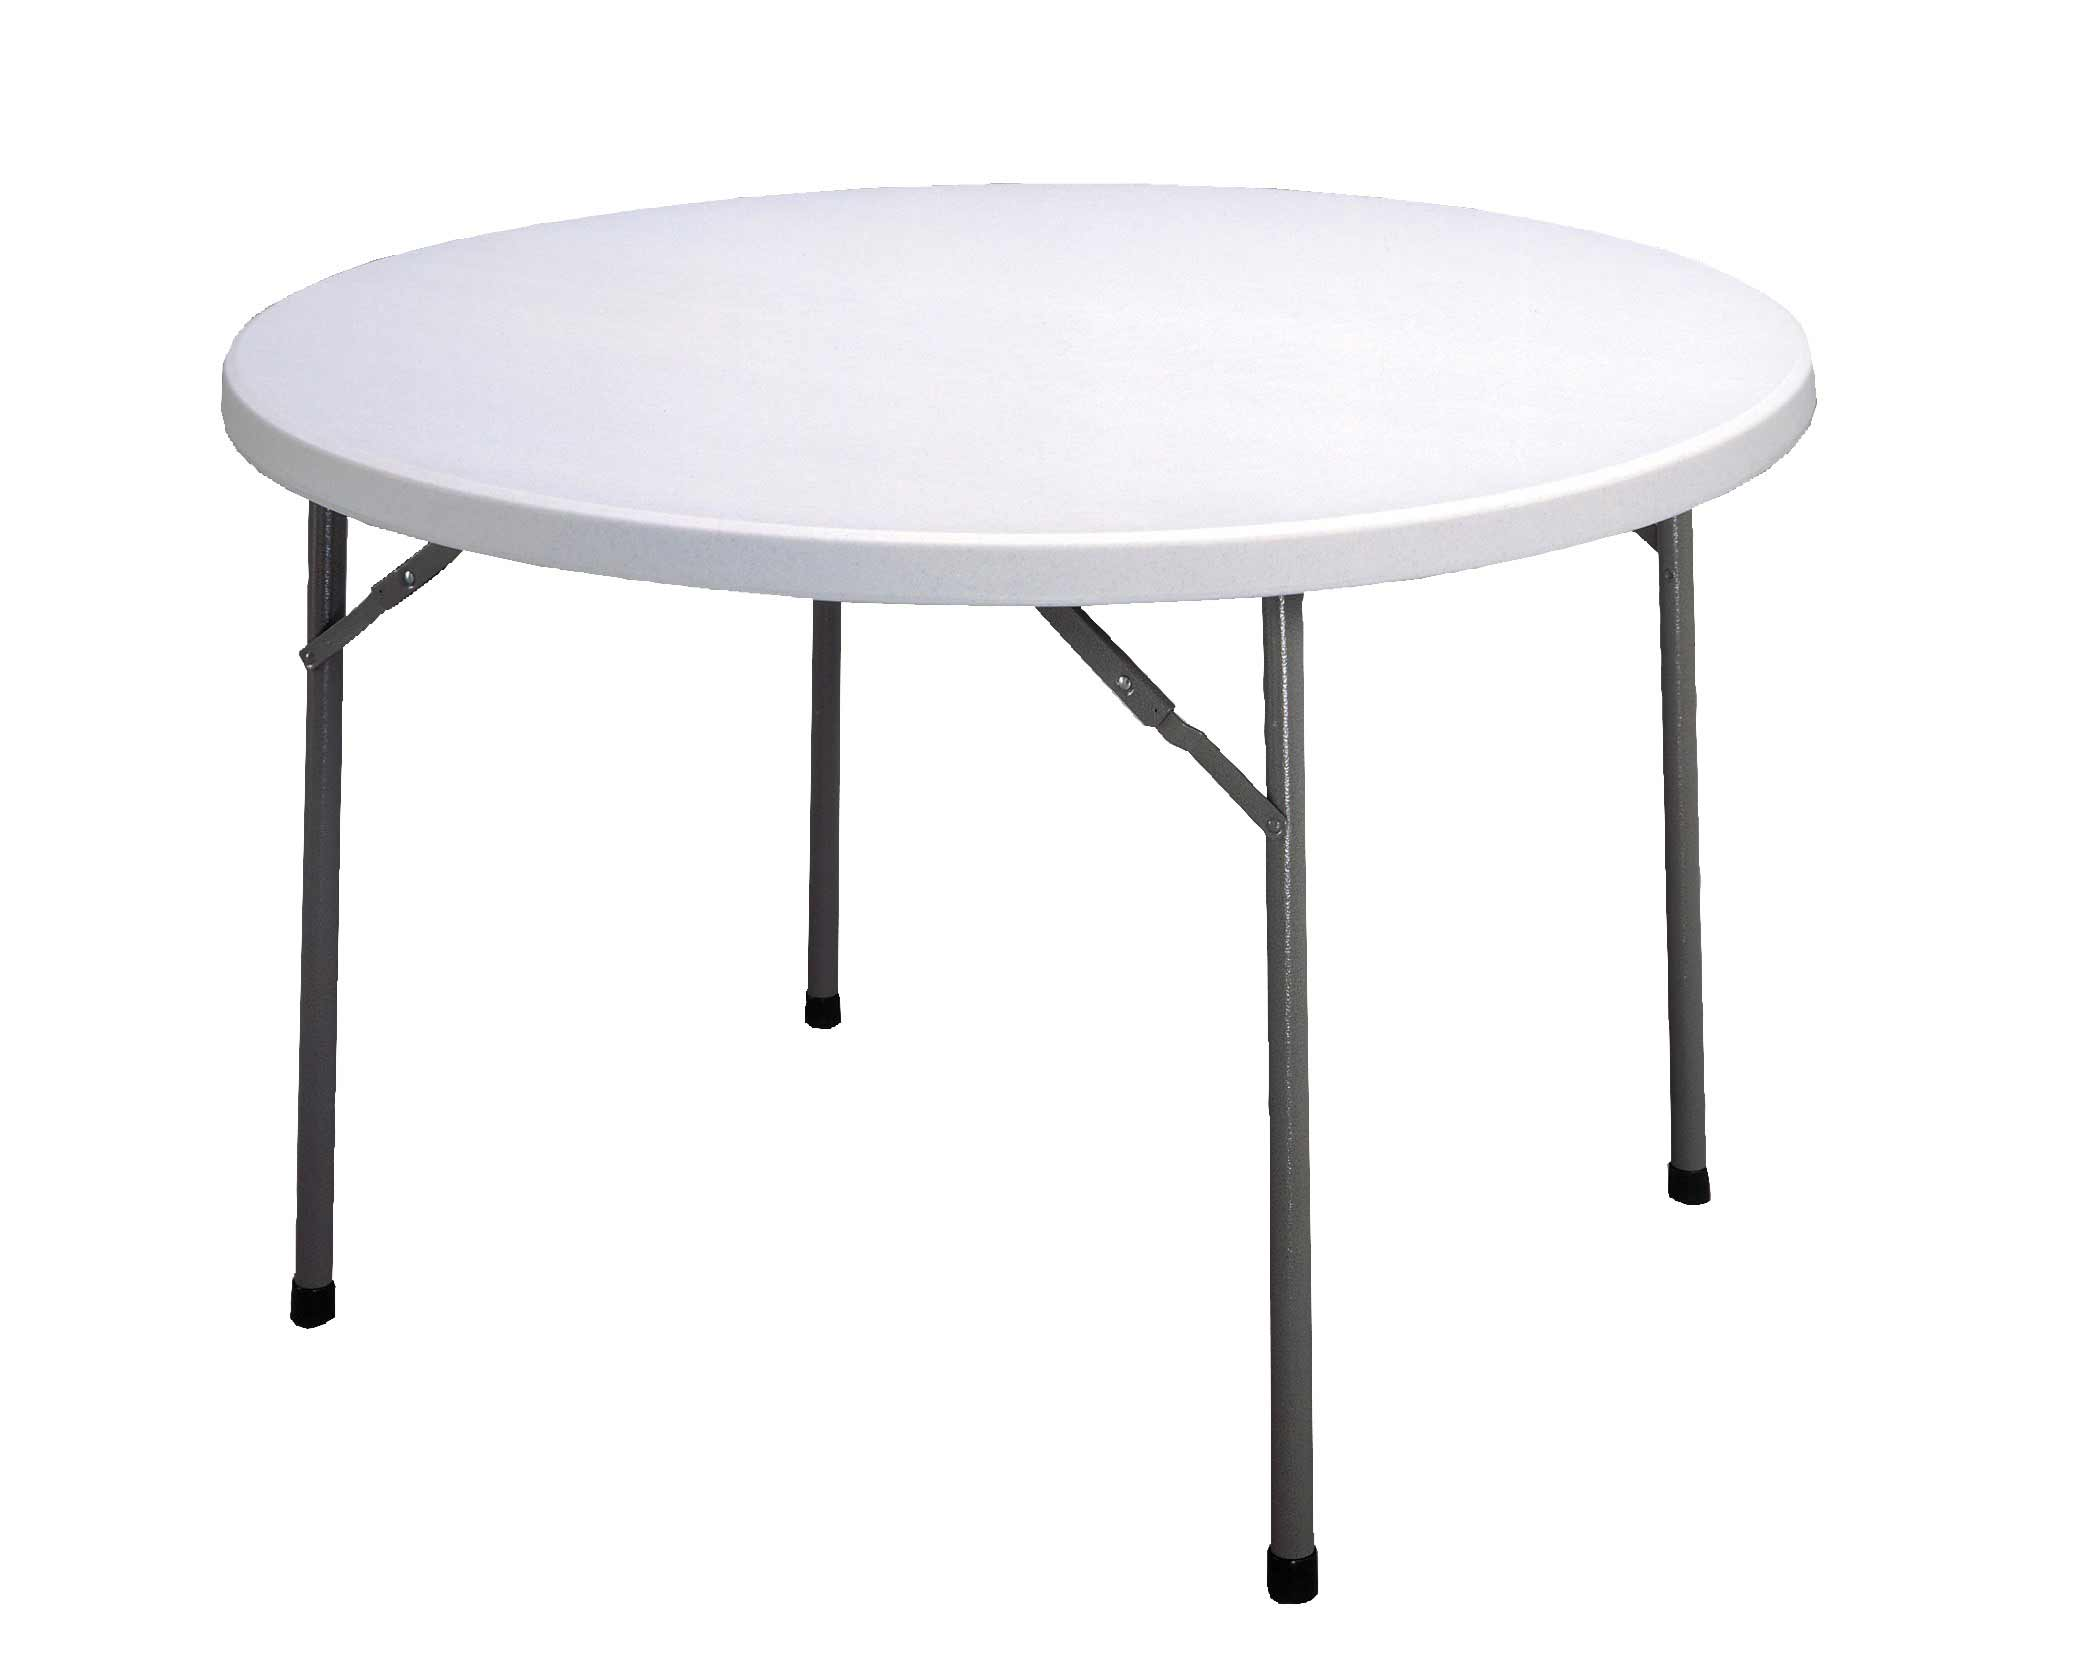 Round folding dining table for home